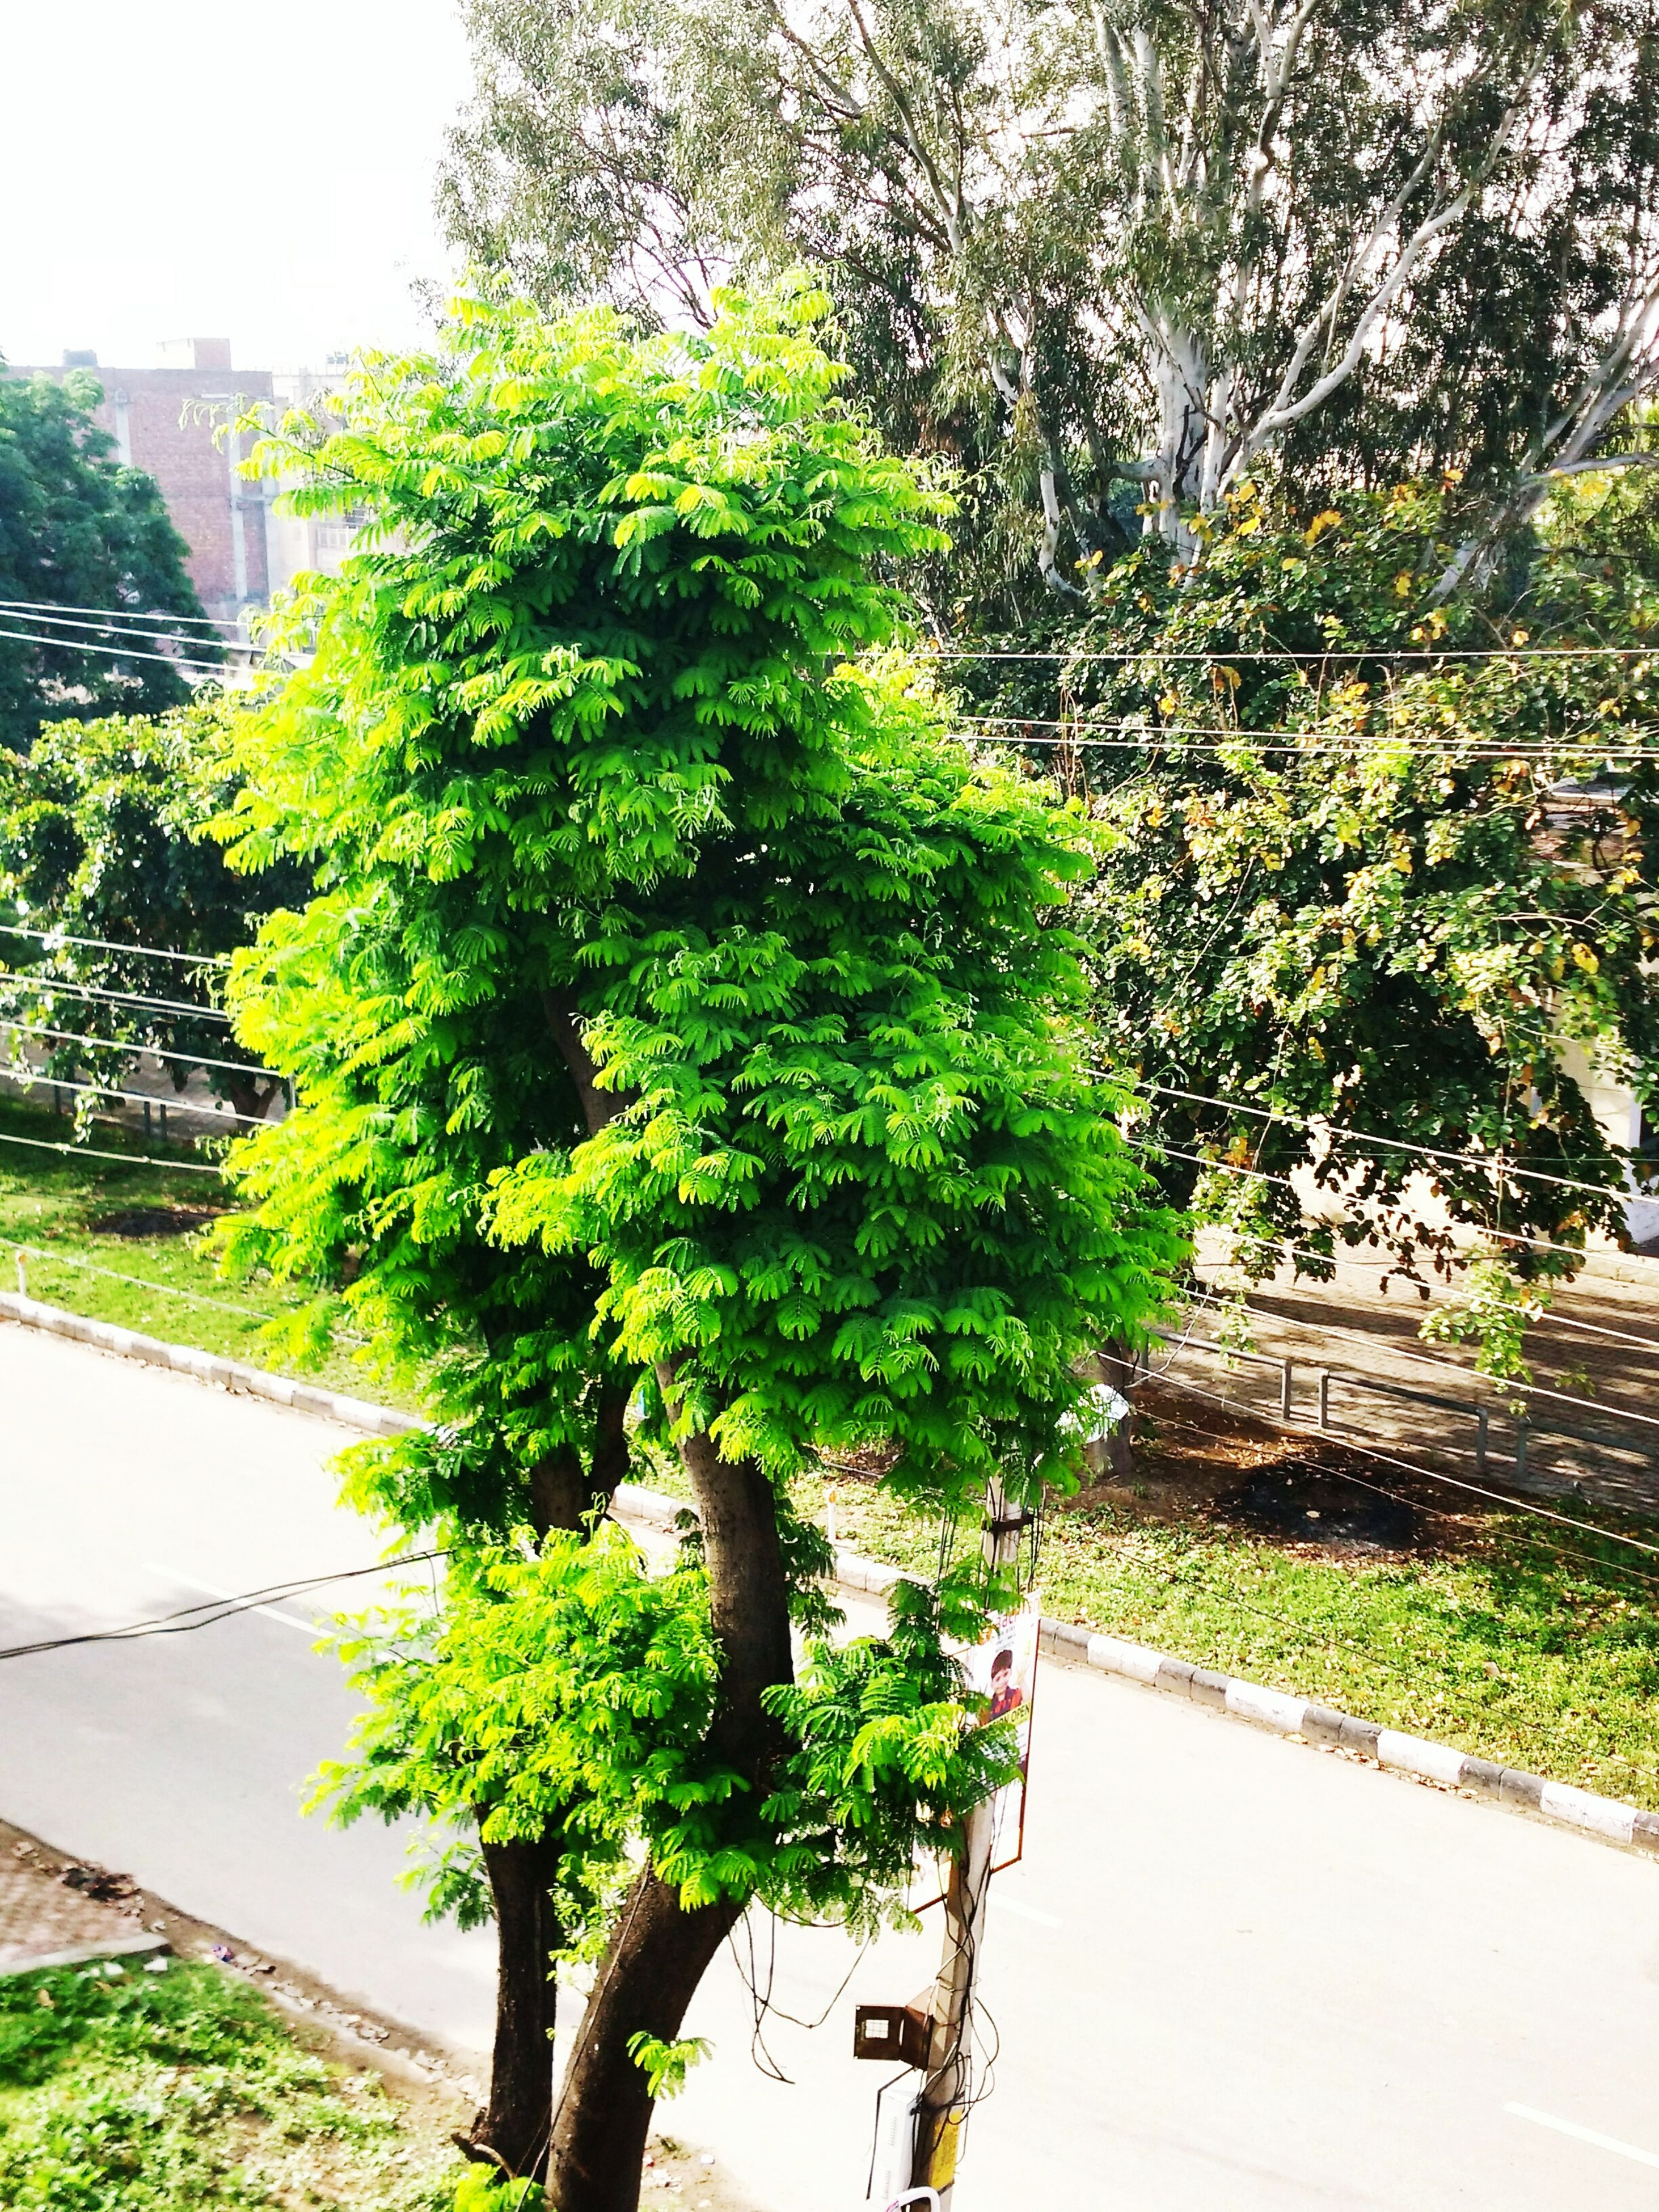 tree, growth, green color, plant, nature, park - man made space, road, branch, lush foliage, sunlight, footpath, transportation, green, beauty in nature, day, outdoors, growing, tranquility, the way forward, no people